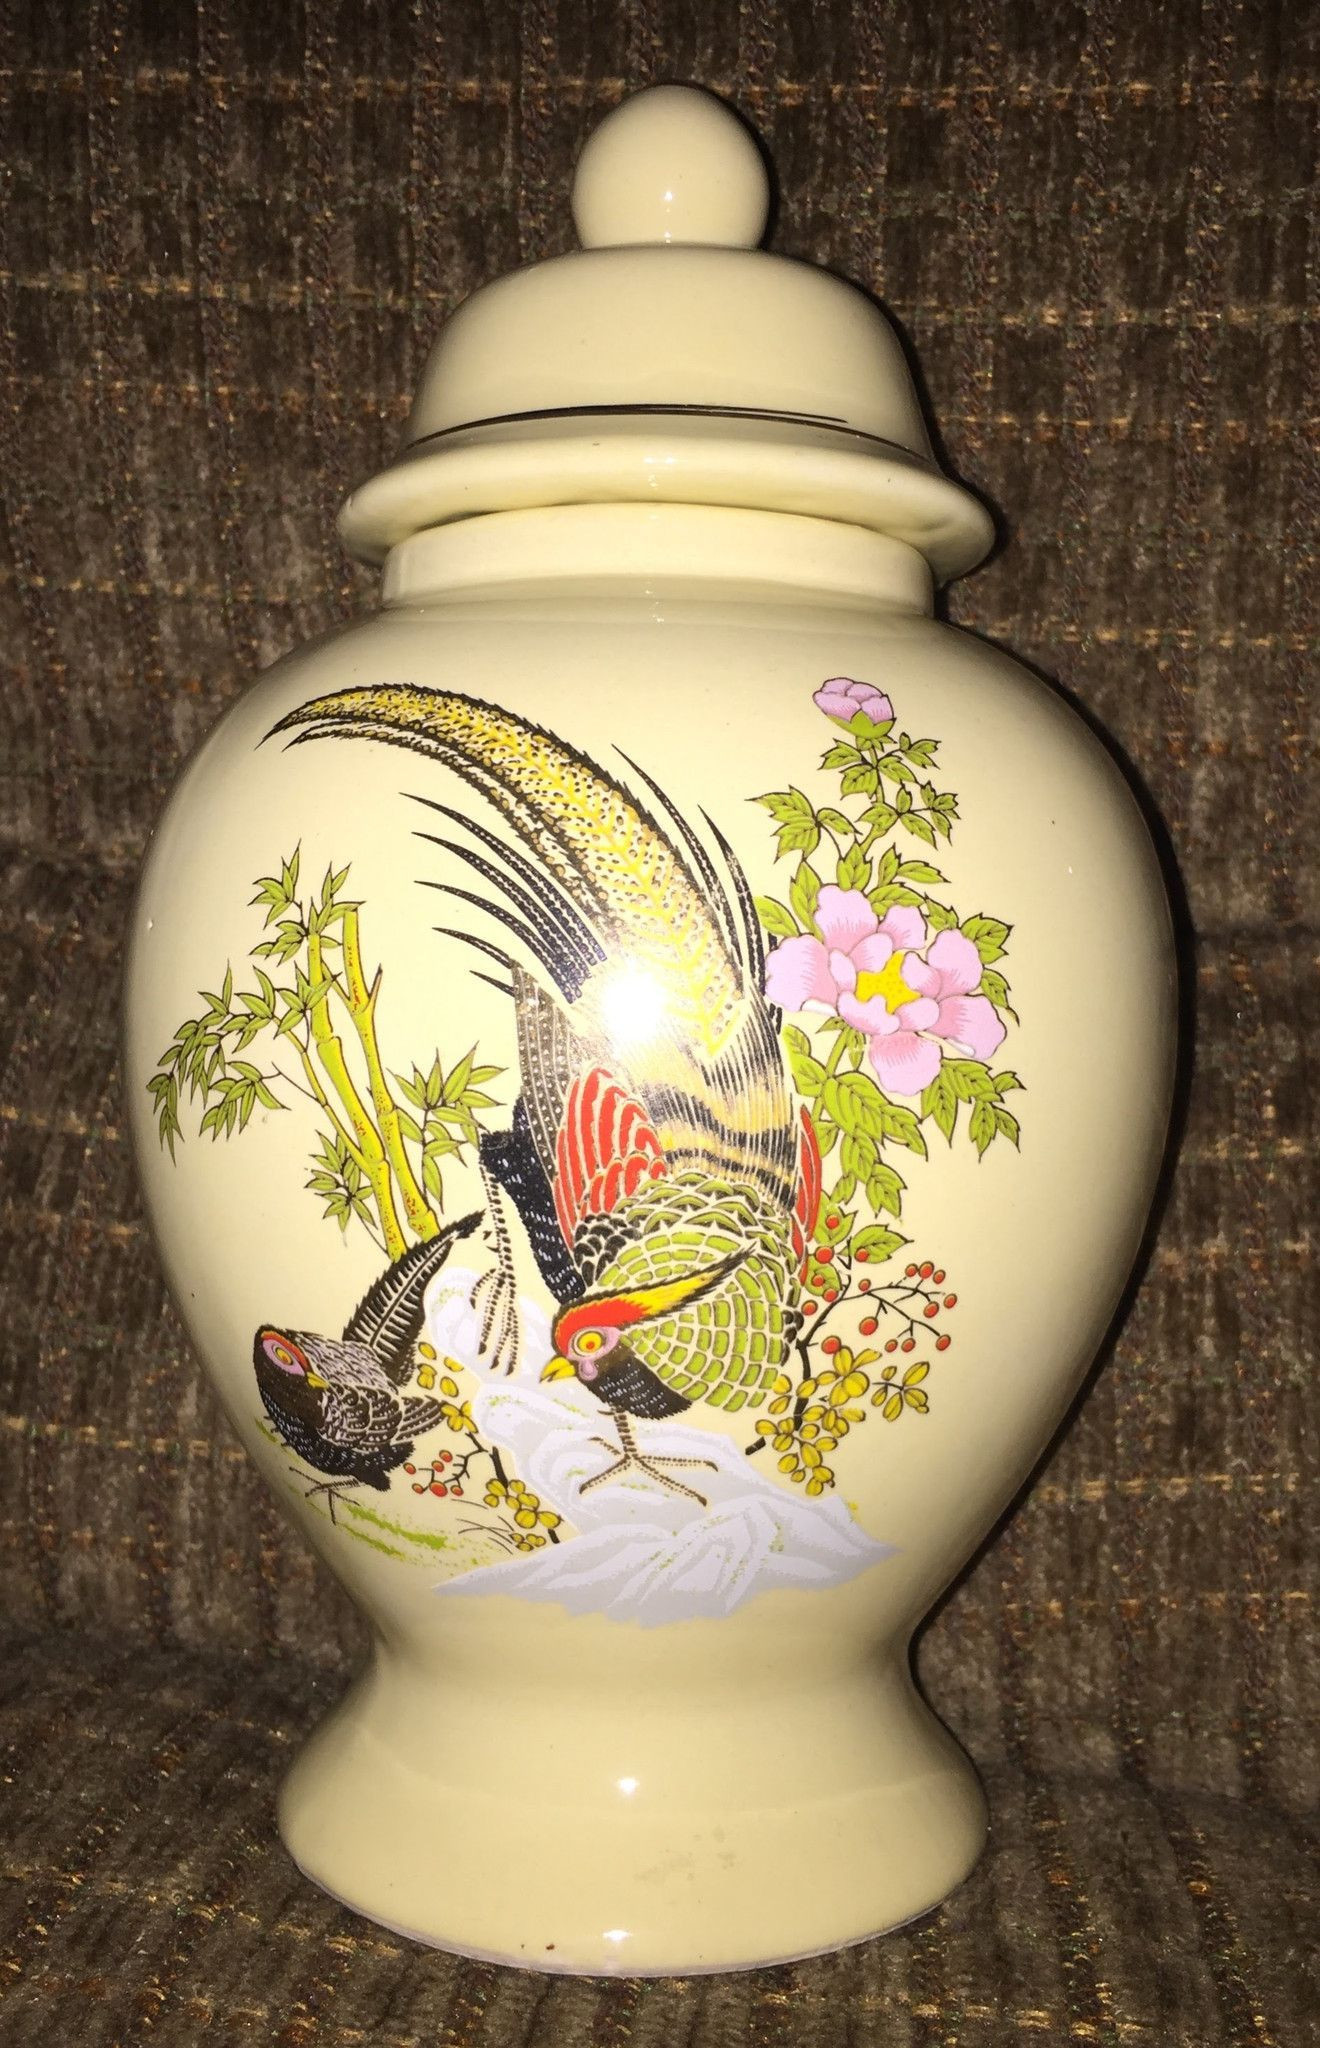 tall vase for bamboo of vintage asian vase jar hand painted pinterest asian vases and within vintage collectible asian vase jar hand painted two birds bamboo and flowers